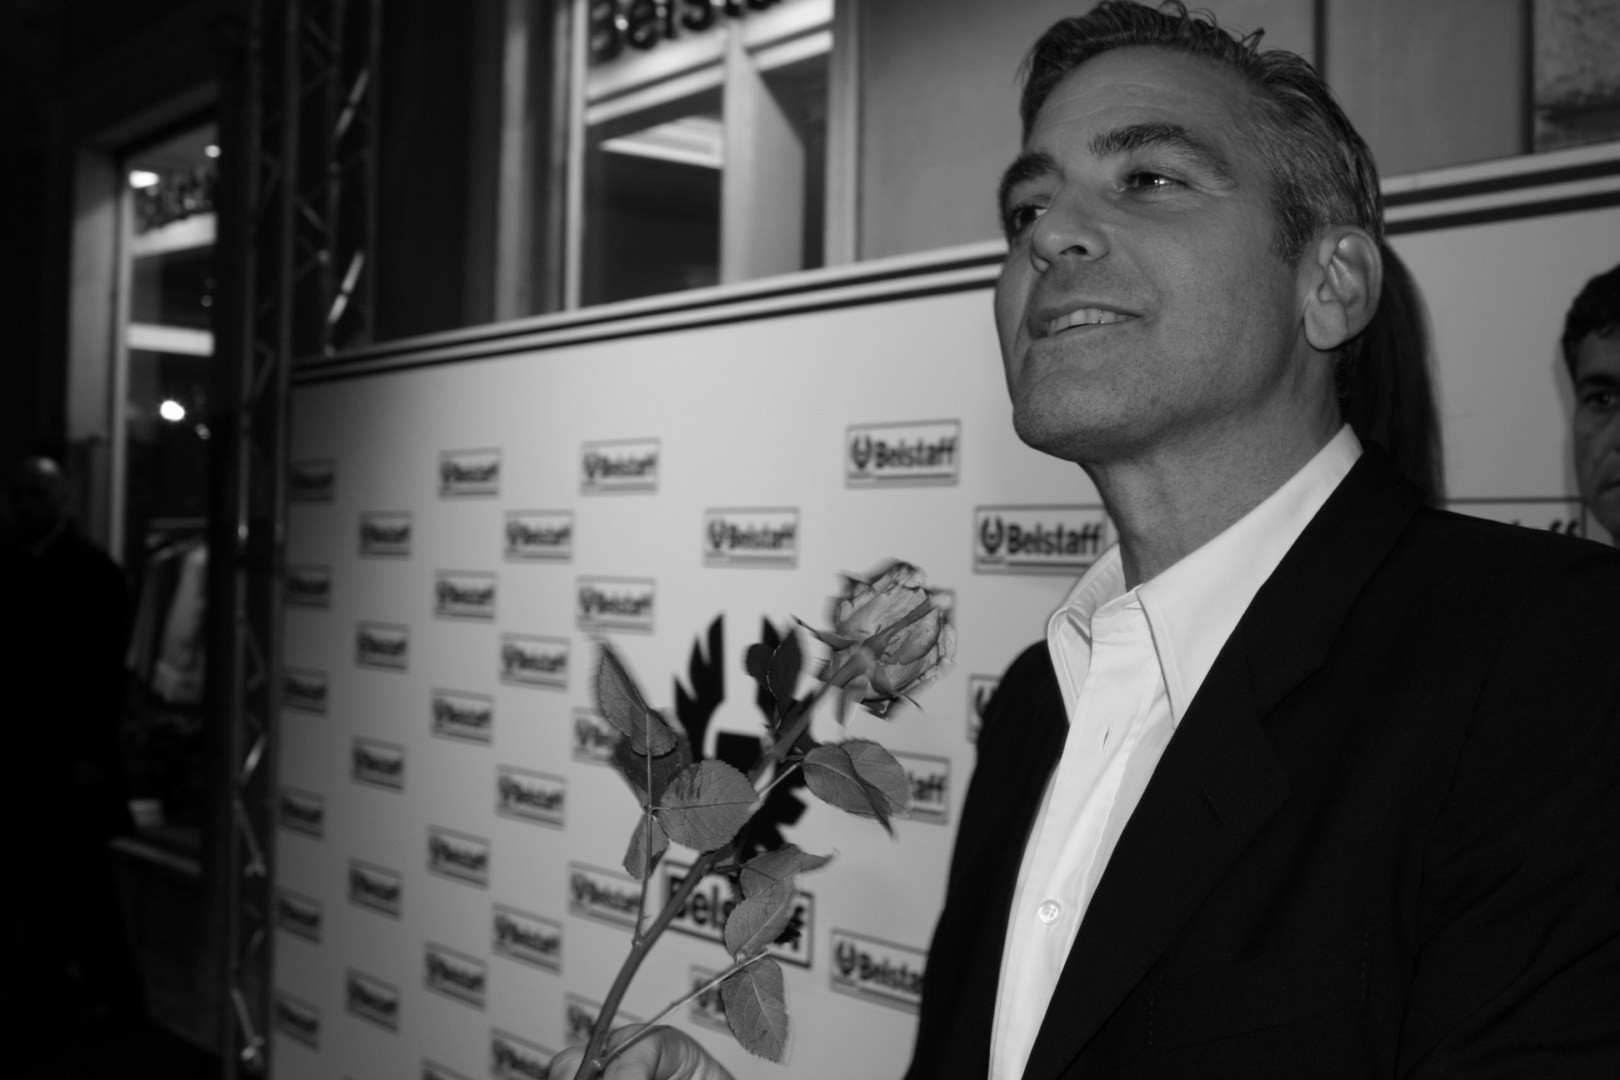 George Clooney - Actor, director, producer | All rights reserved |